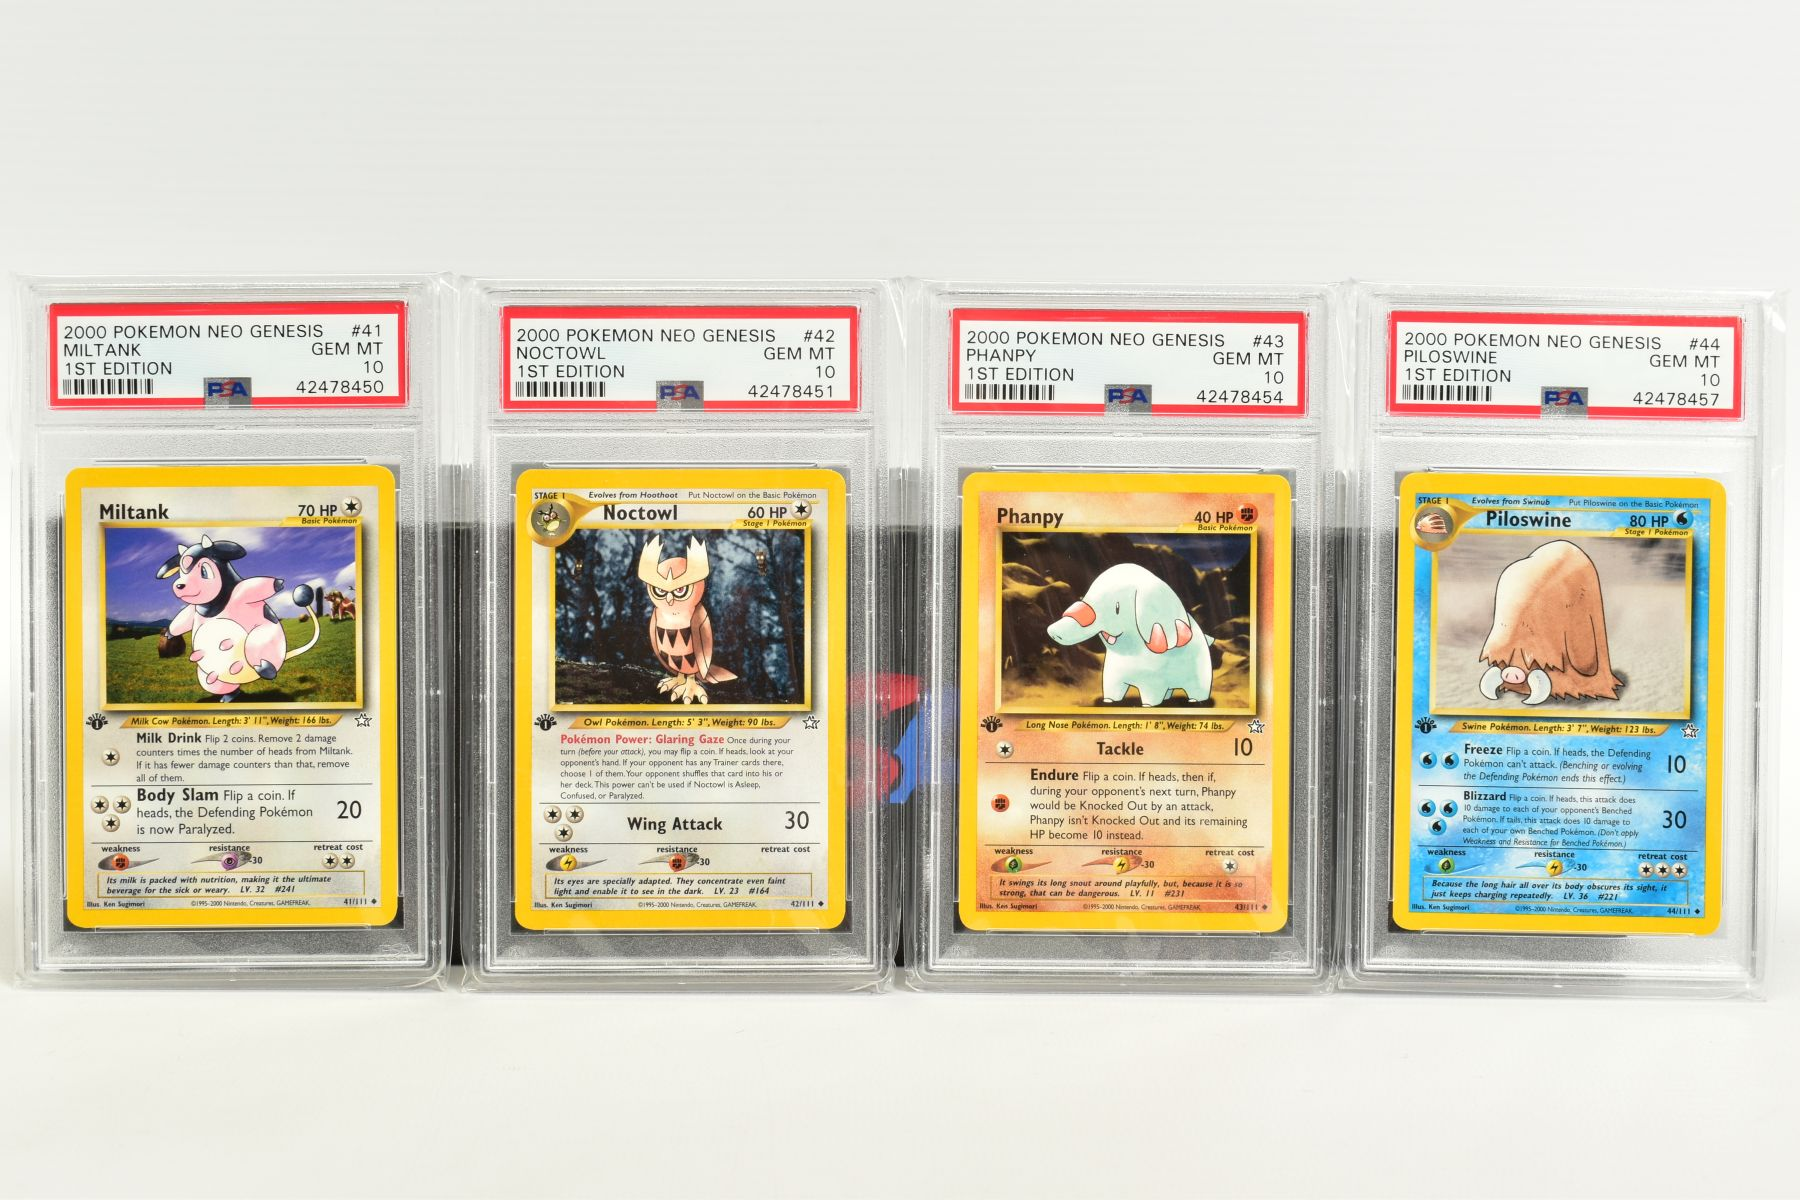 A QUANTITY OF PSA GRADED POKEMON 1ST EDITION NEO GENESIS SET CARDS, all are graded GEM MINT 10 and - Image 7 of 24